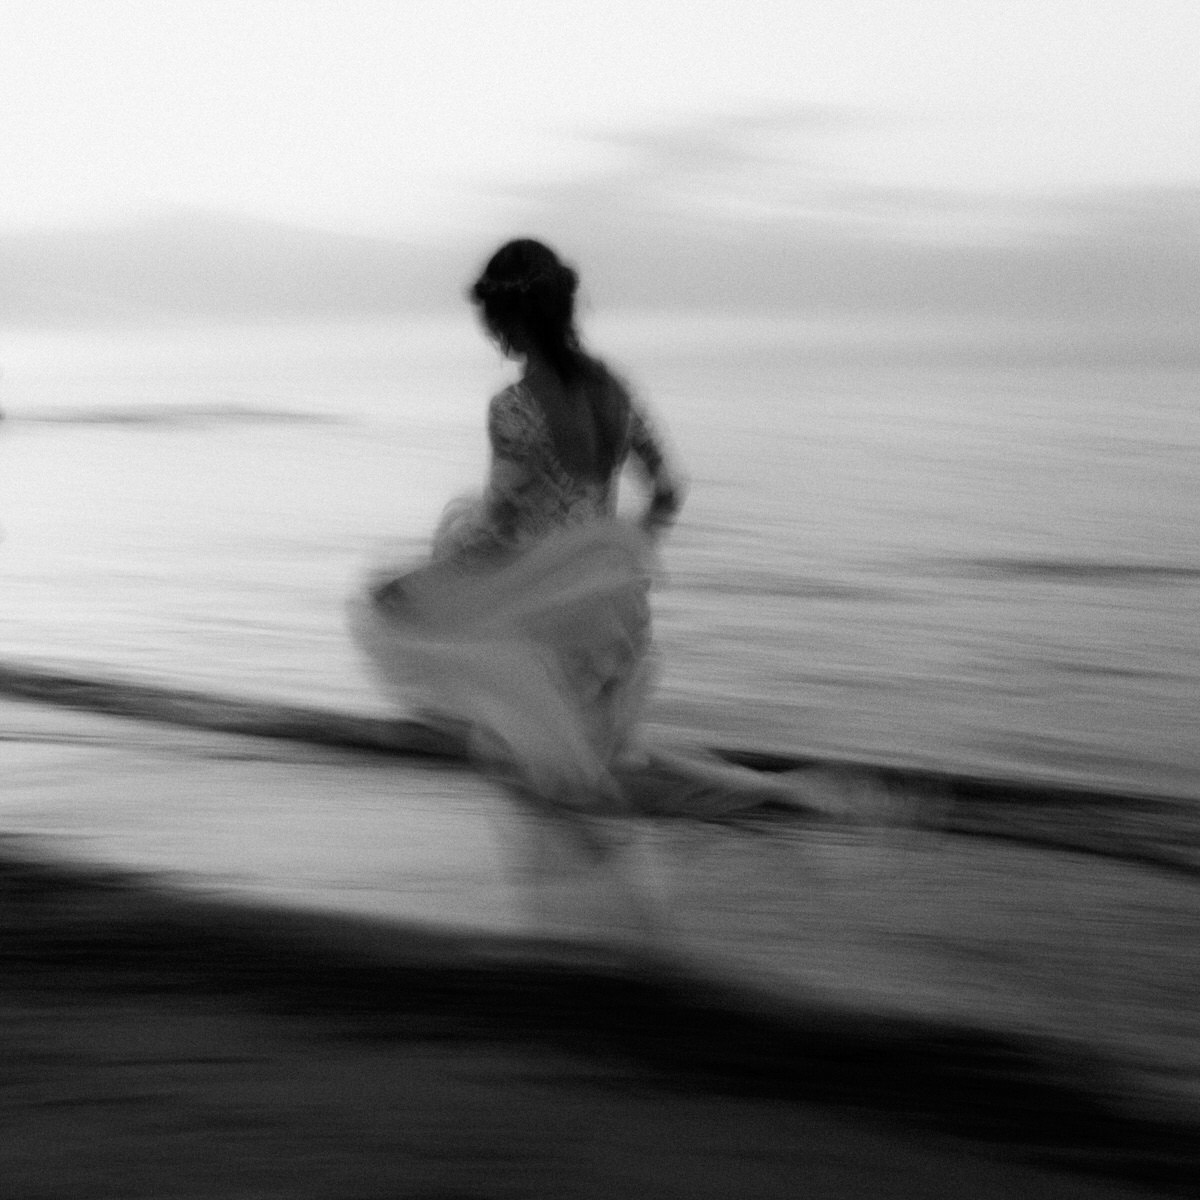 bride running barefoot along the beach motion blur documentary wedding photographer northern ireland baltic sea wedding